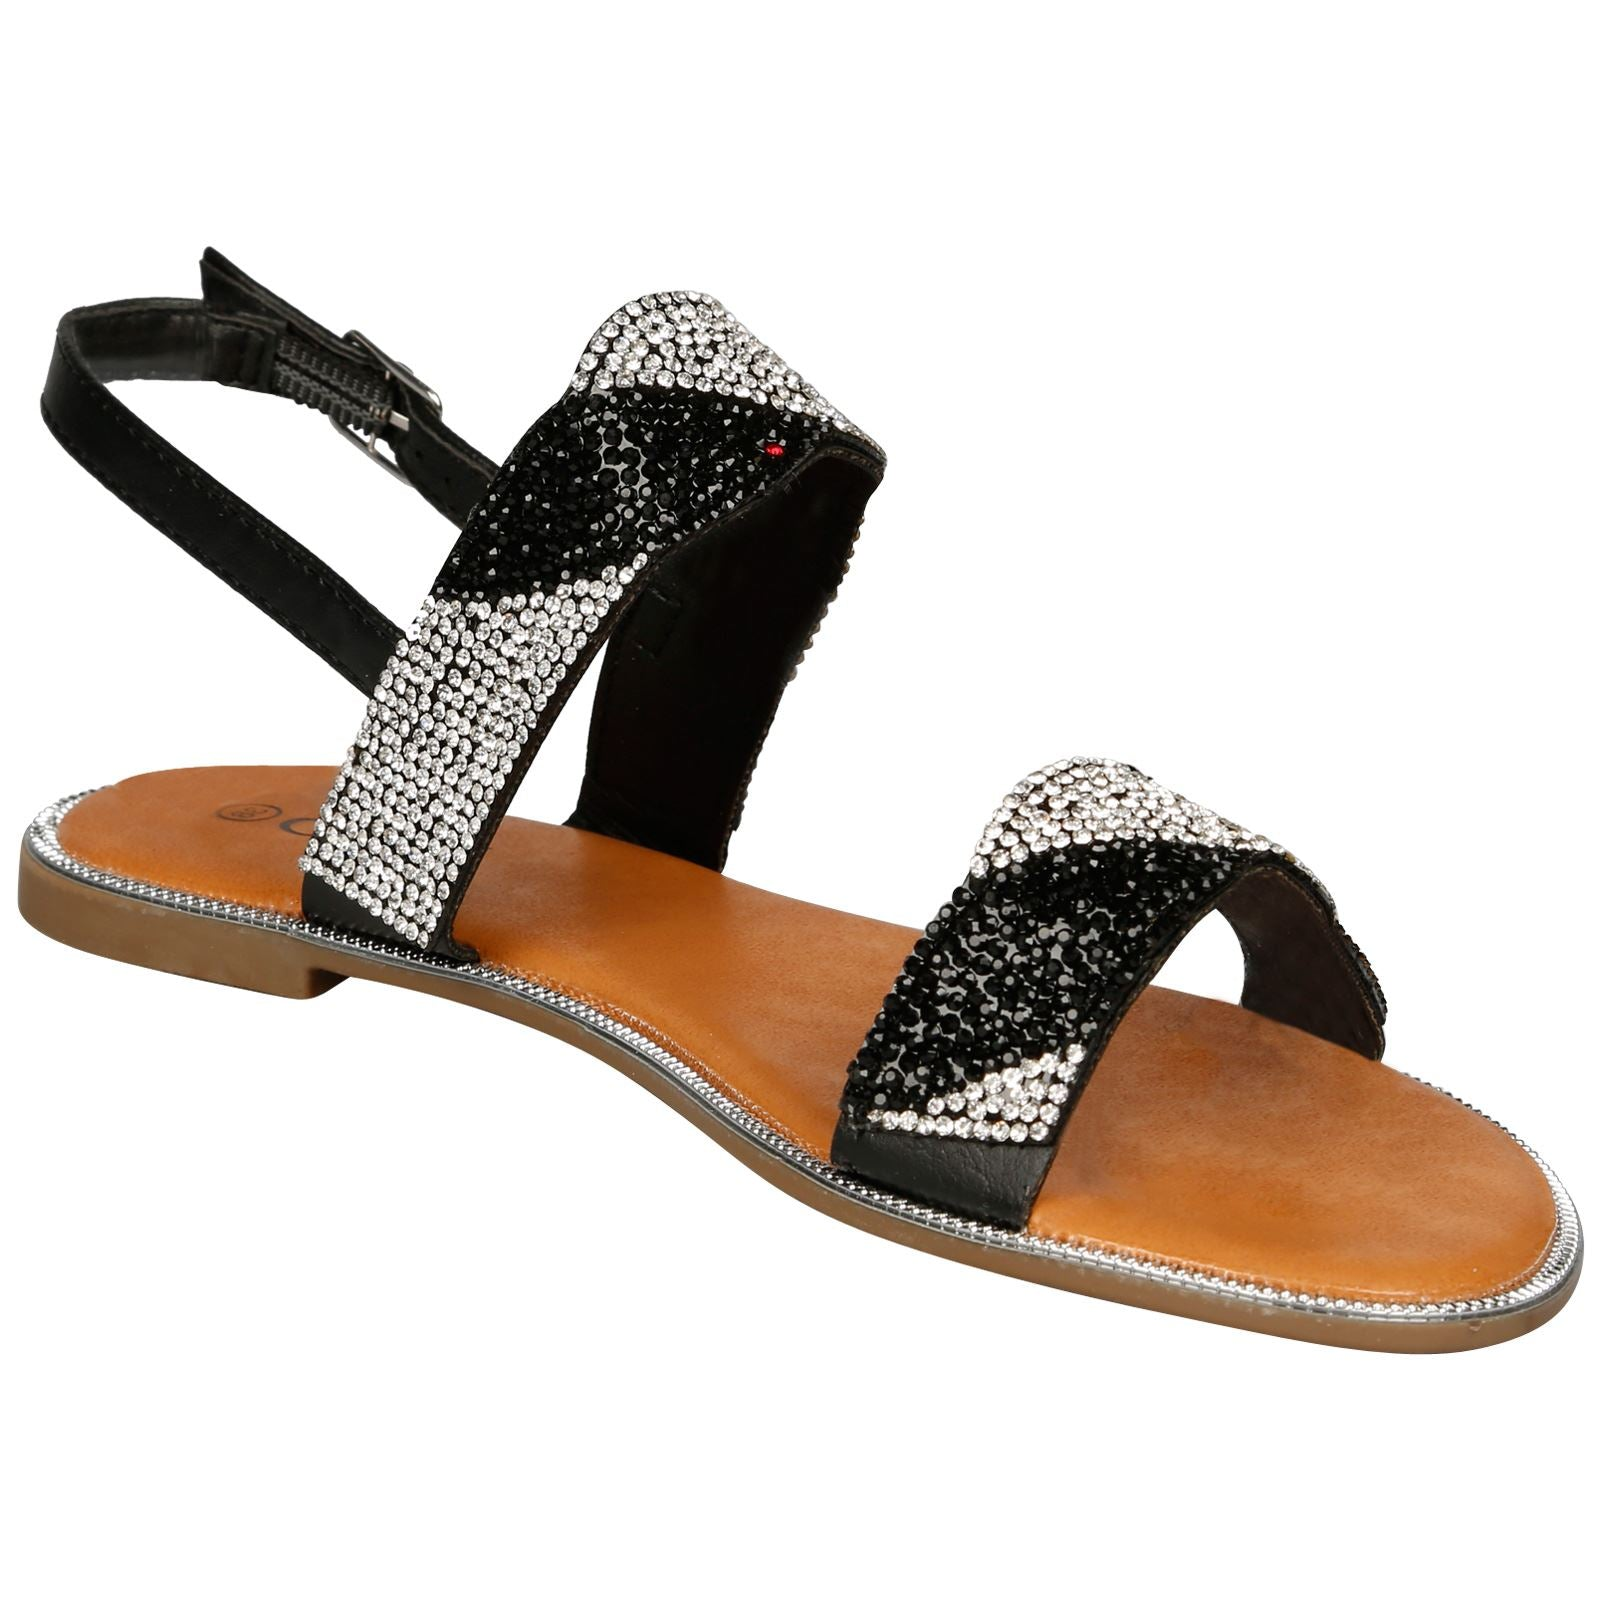 Meadow Diamante Stripe Sandals in Black Faux Leather